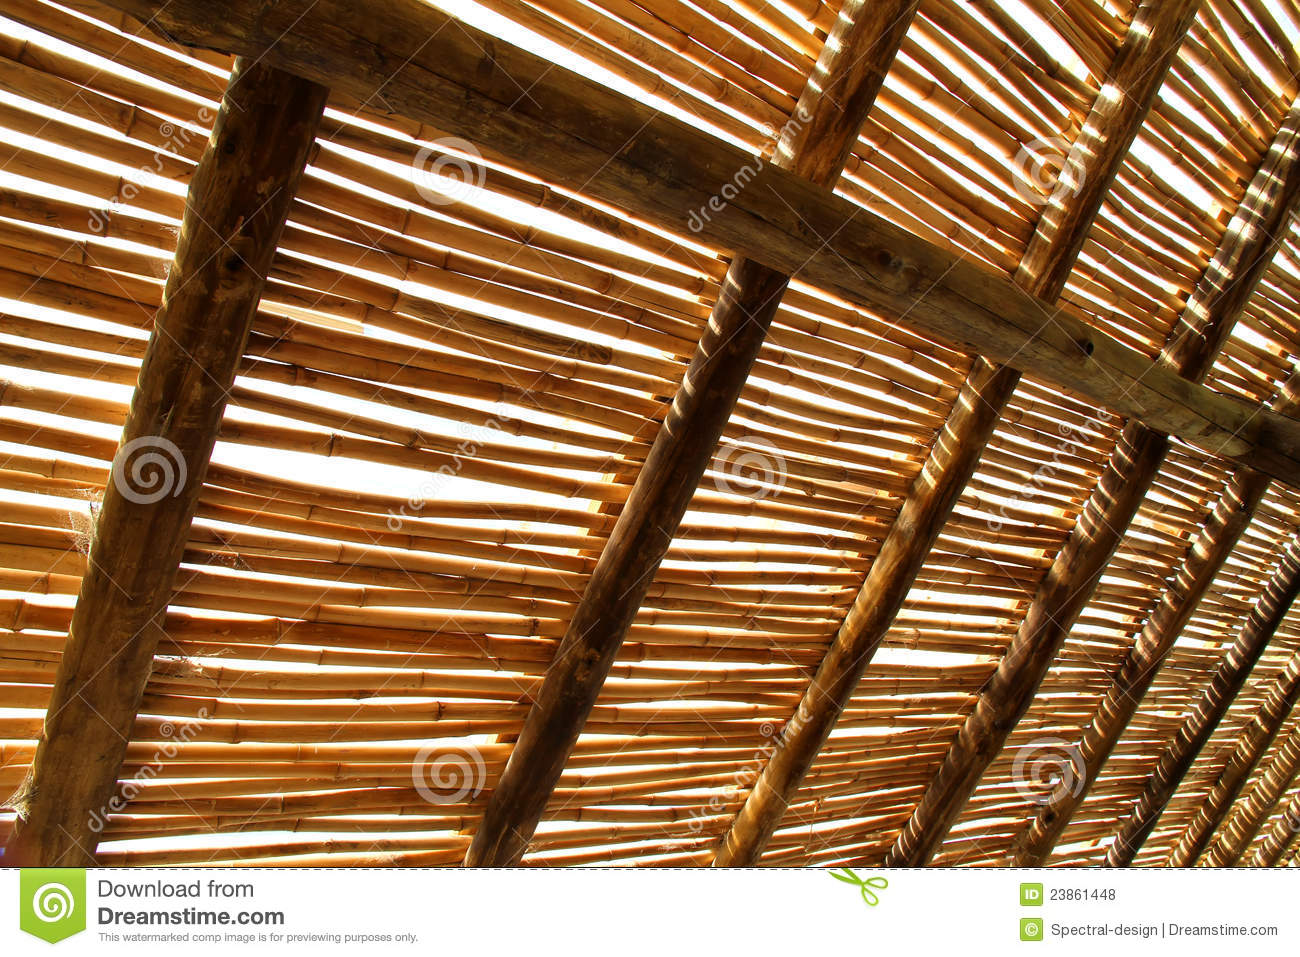 Bamboo Roof Royalty Free Stock Photos Image 23861448